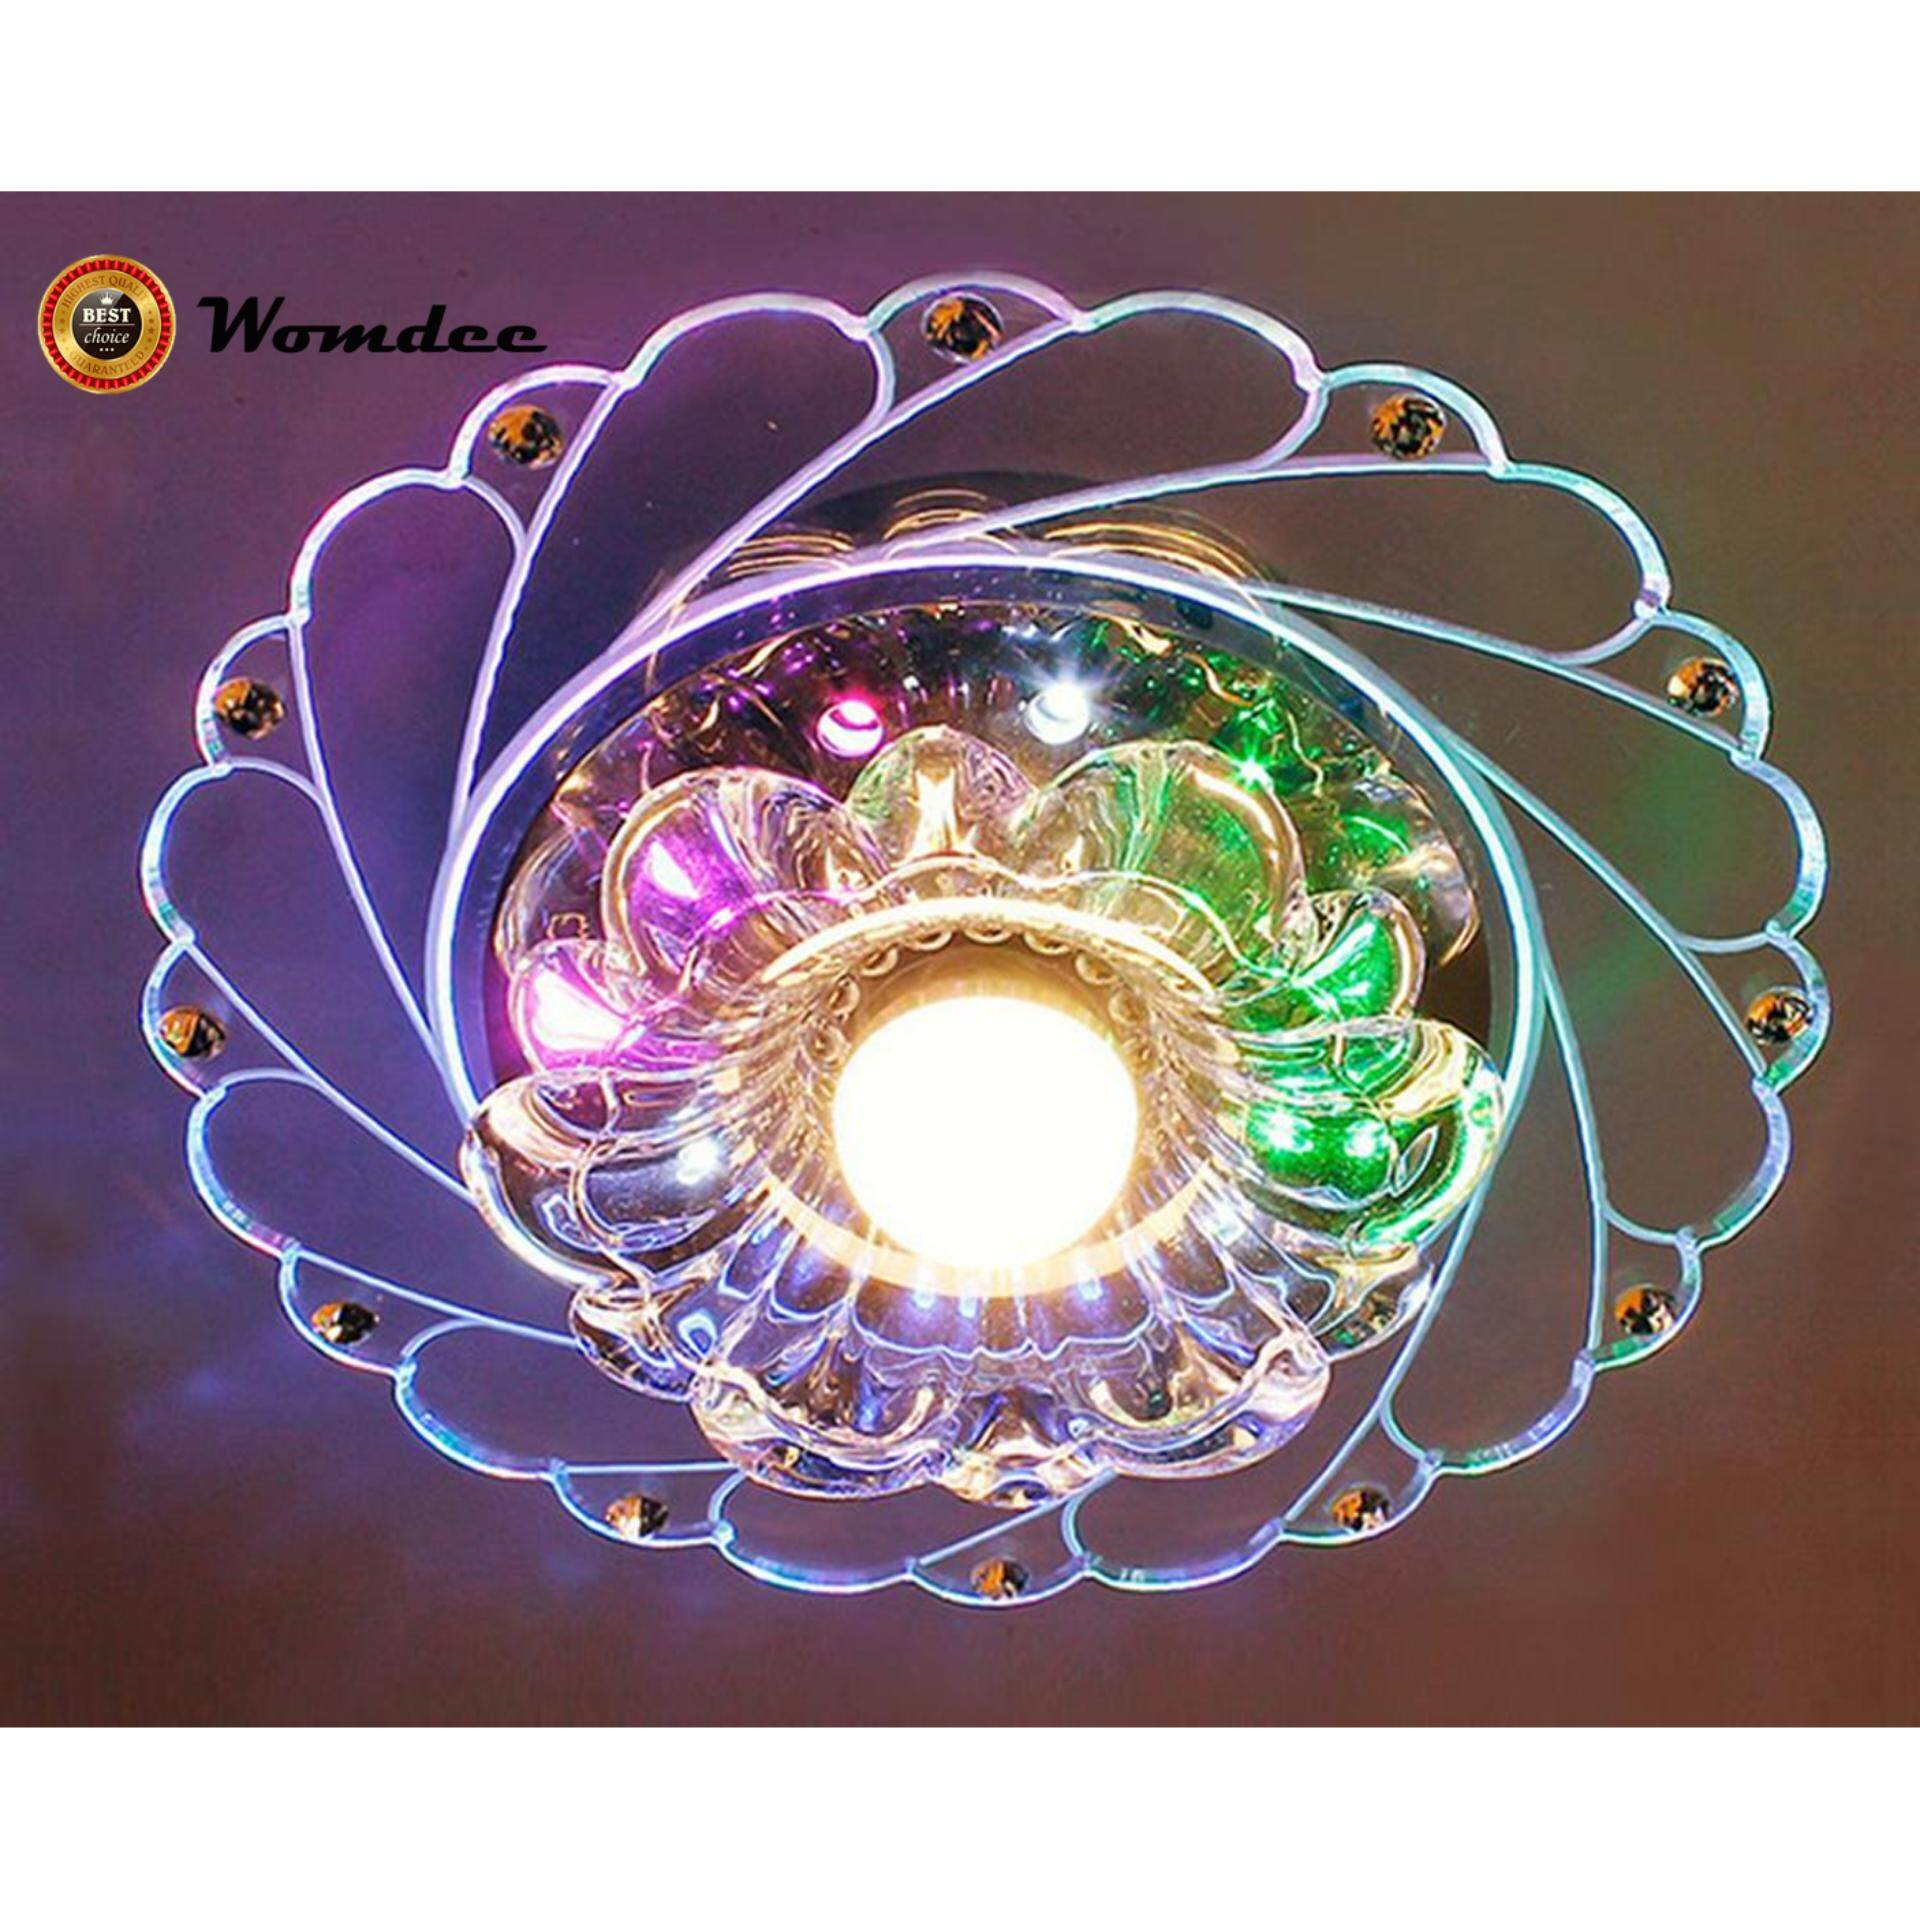 Womdee LED Crystal Ceiling Light Aisle Corridor Light Living Room Porch Lighting,Colorful - intl